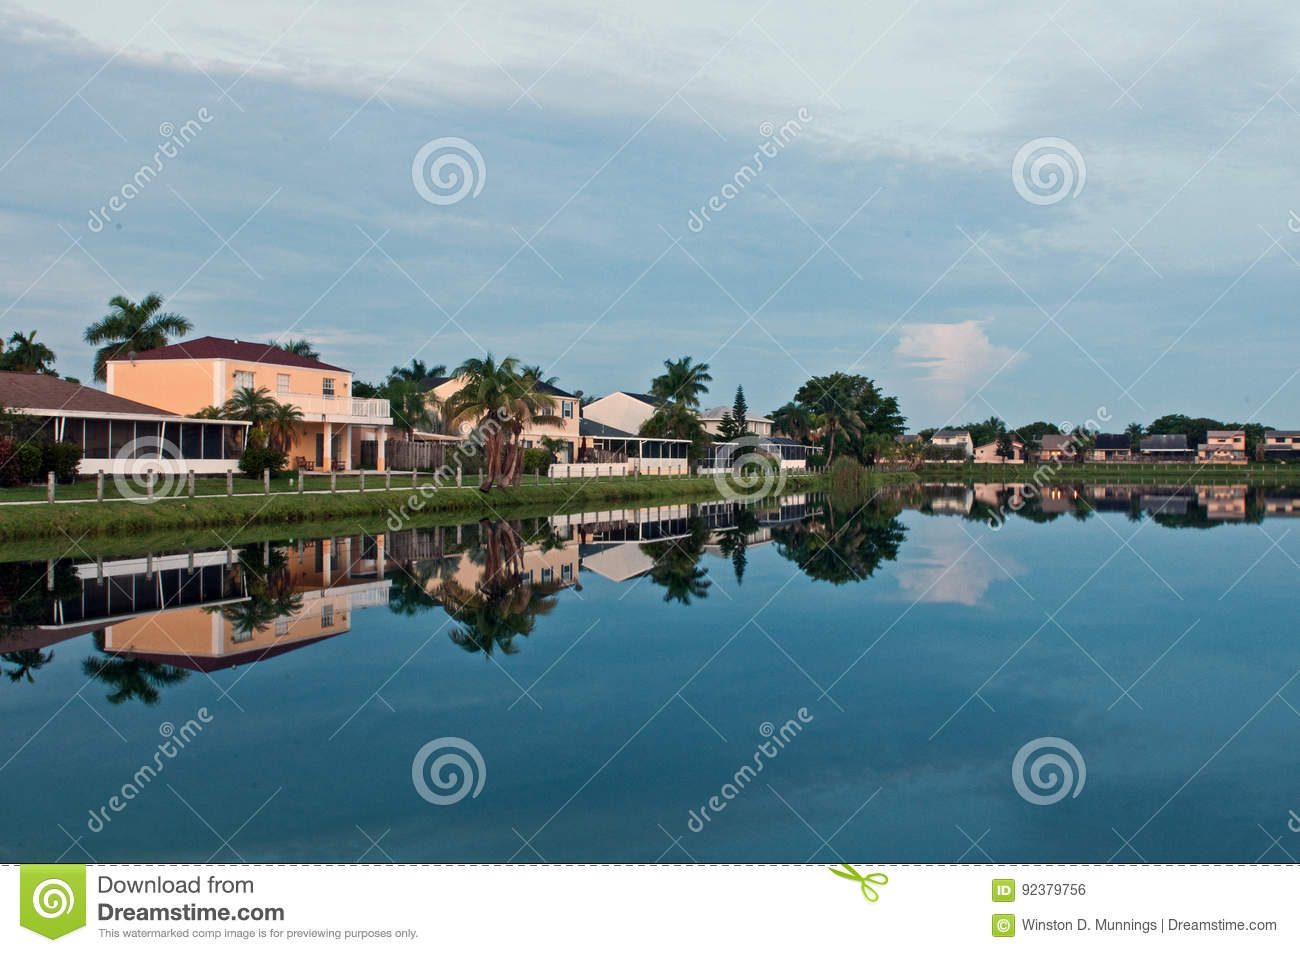 Download Lakeside Living Stock Photo. Image Of Lakeside, Water   92379756